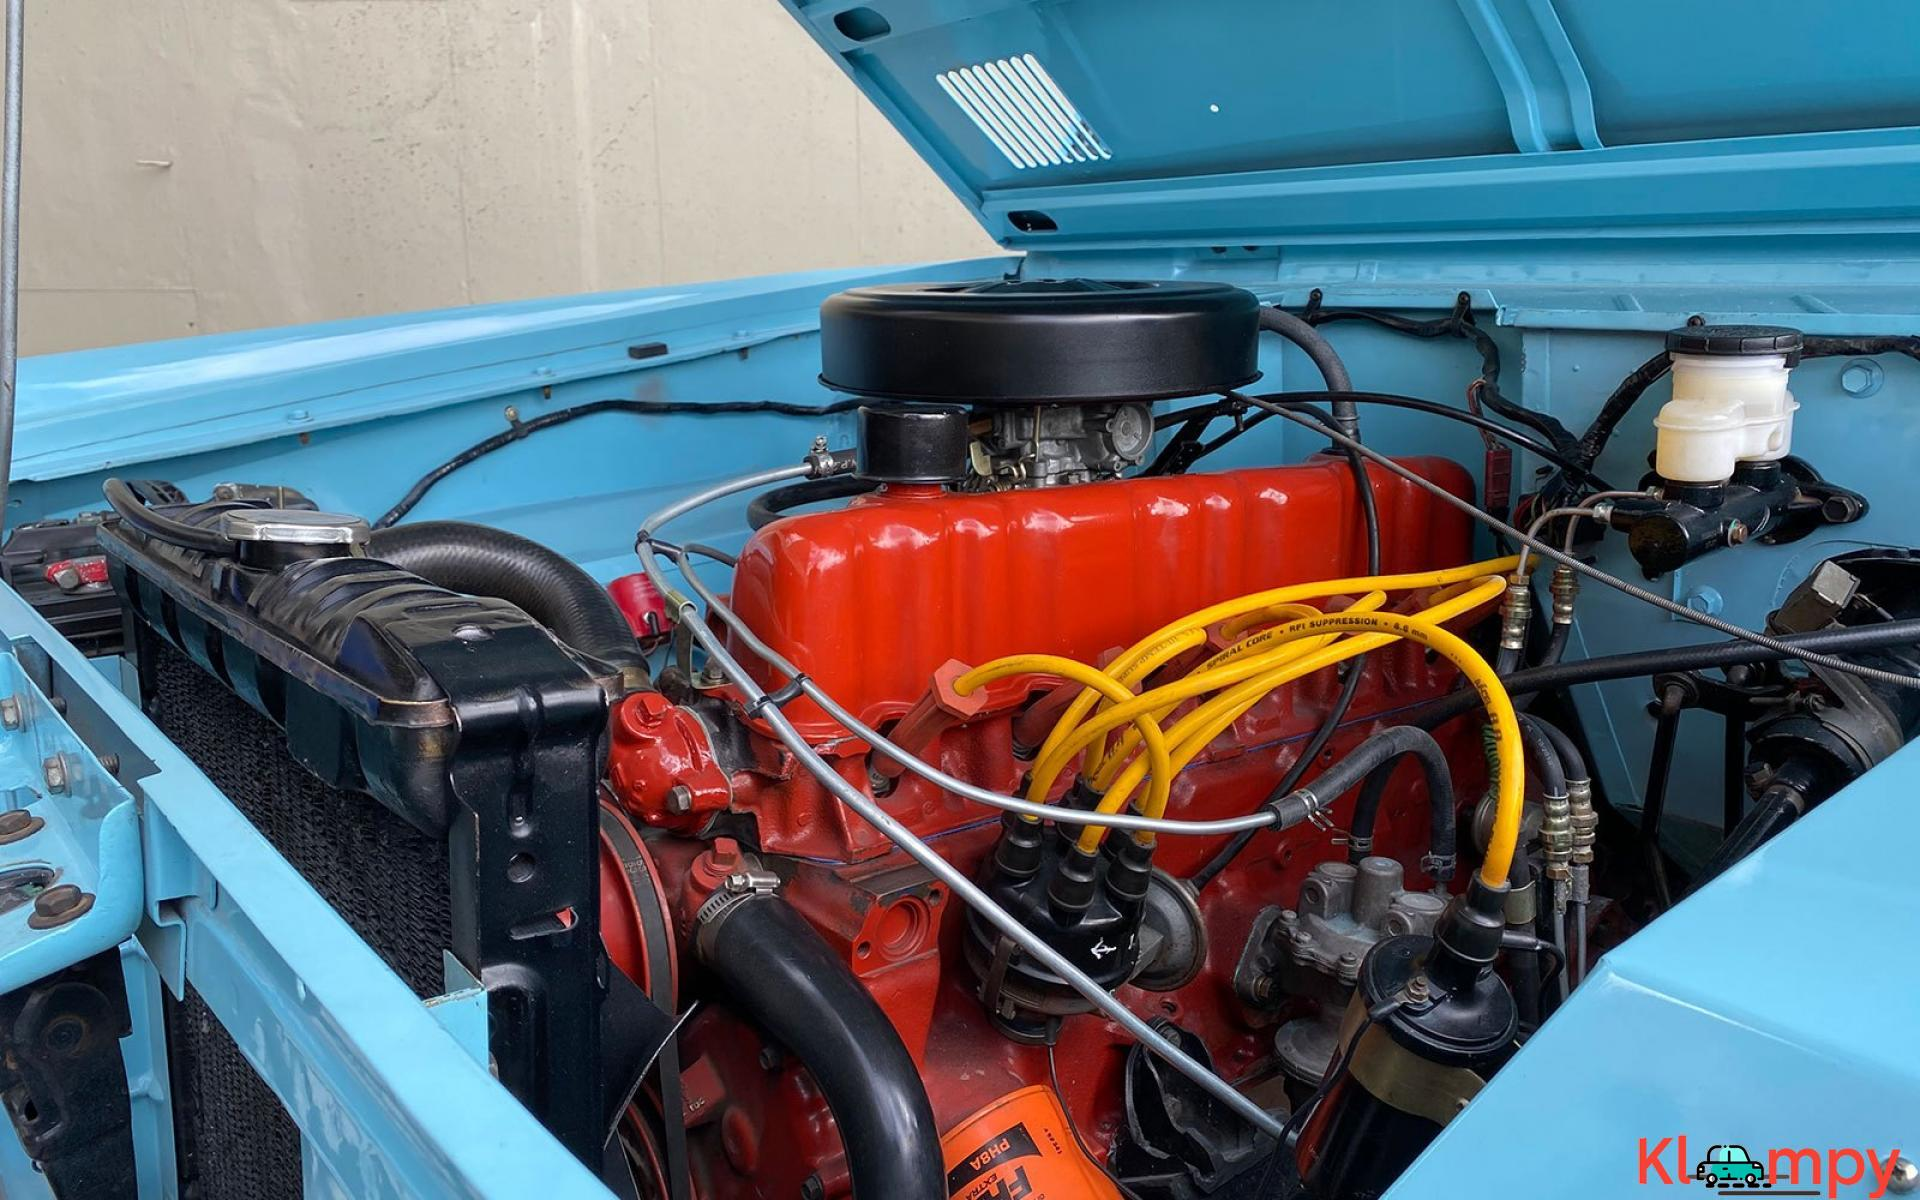 1967 Ford Bronco 170 Inline-Six - 16/21